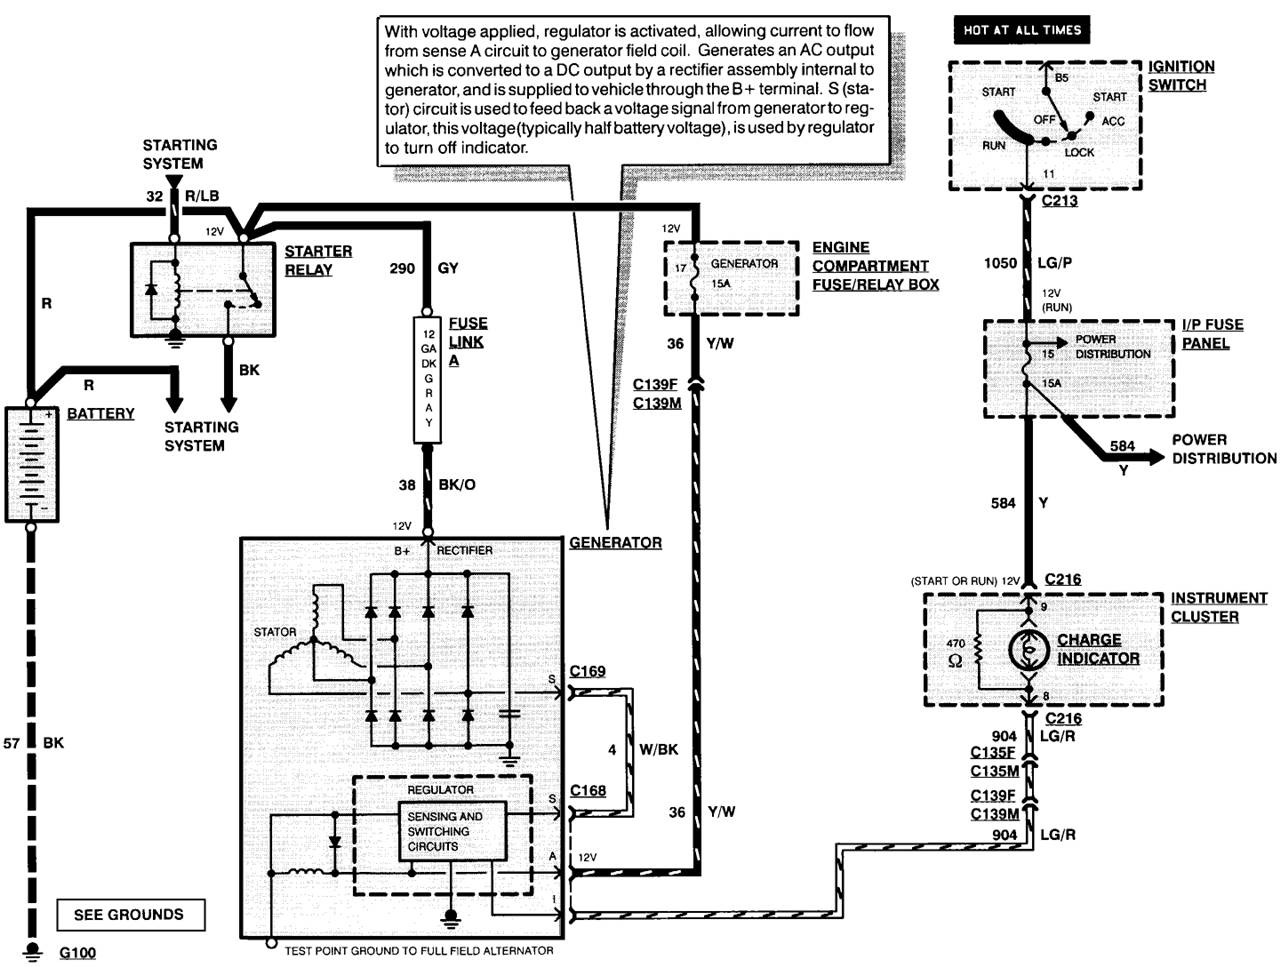 hight resolution of wiring diagram for ford alternator with internal regulator wiring ford alternator internal regulator wiring ford alternator